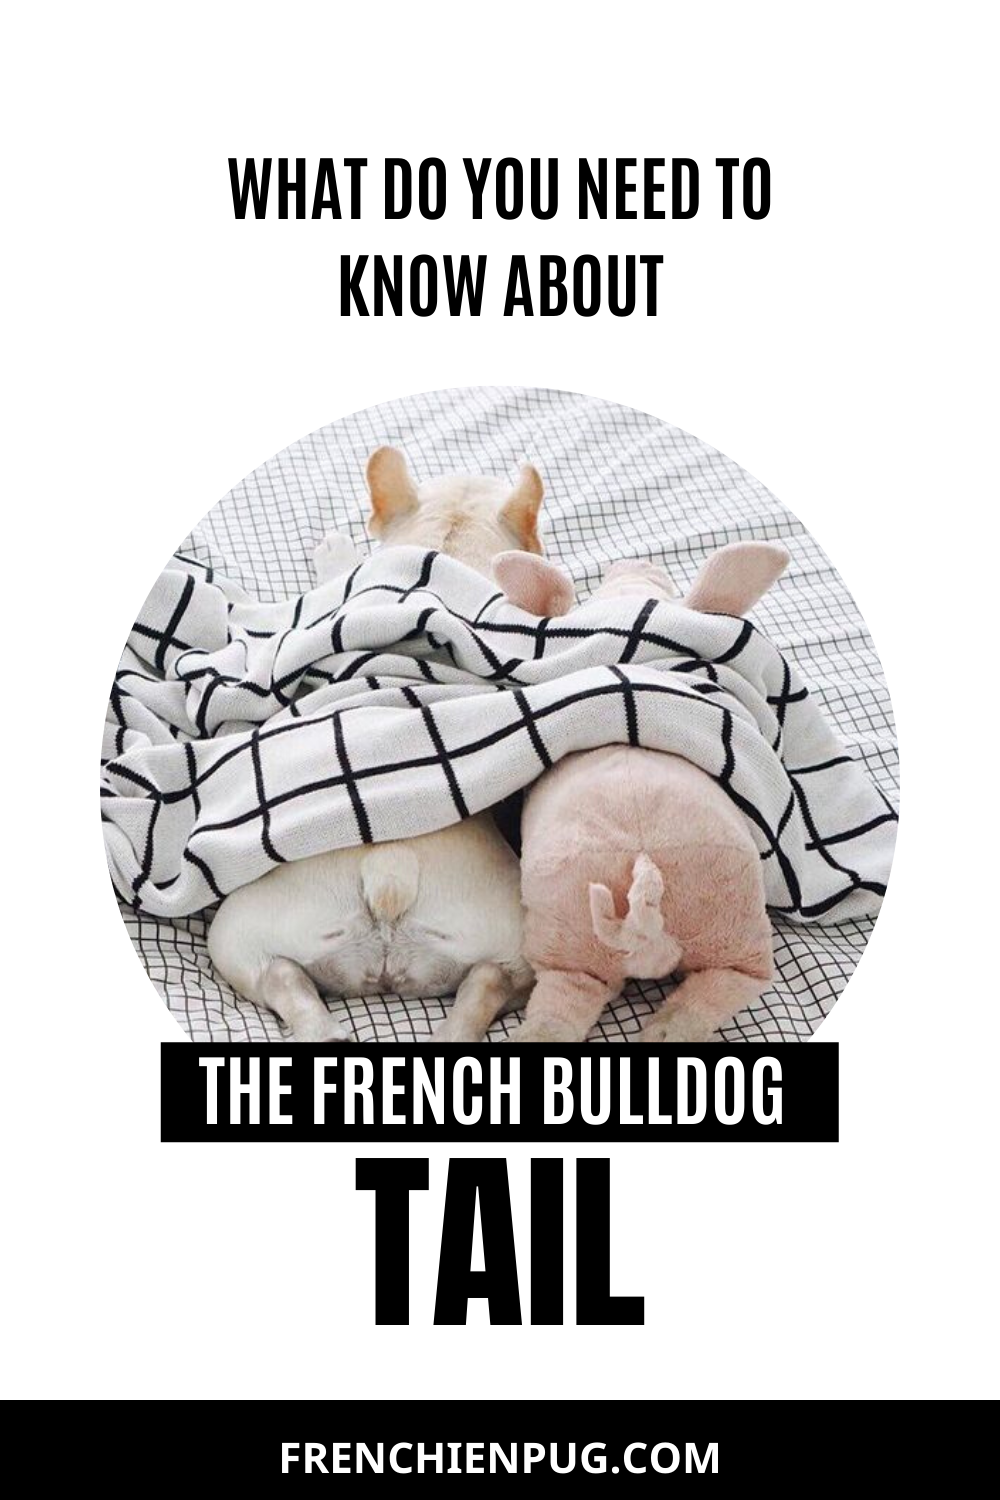 What do you need to know about the French bulldog tail?